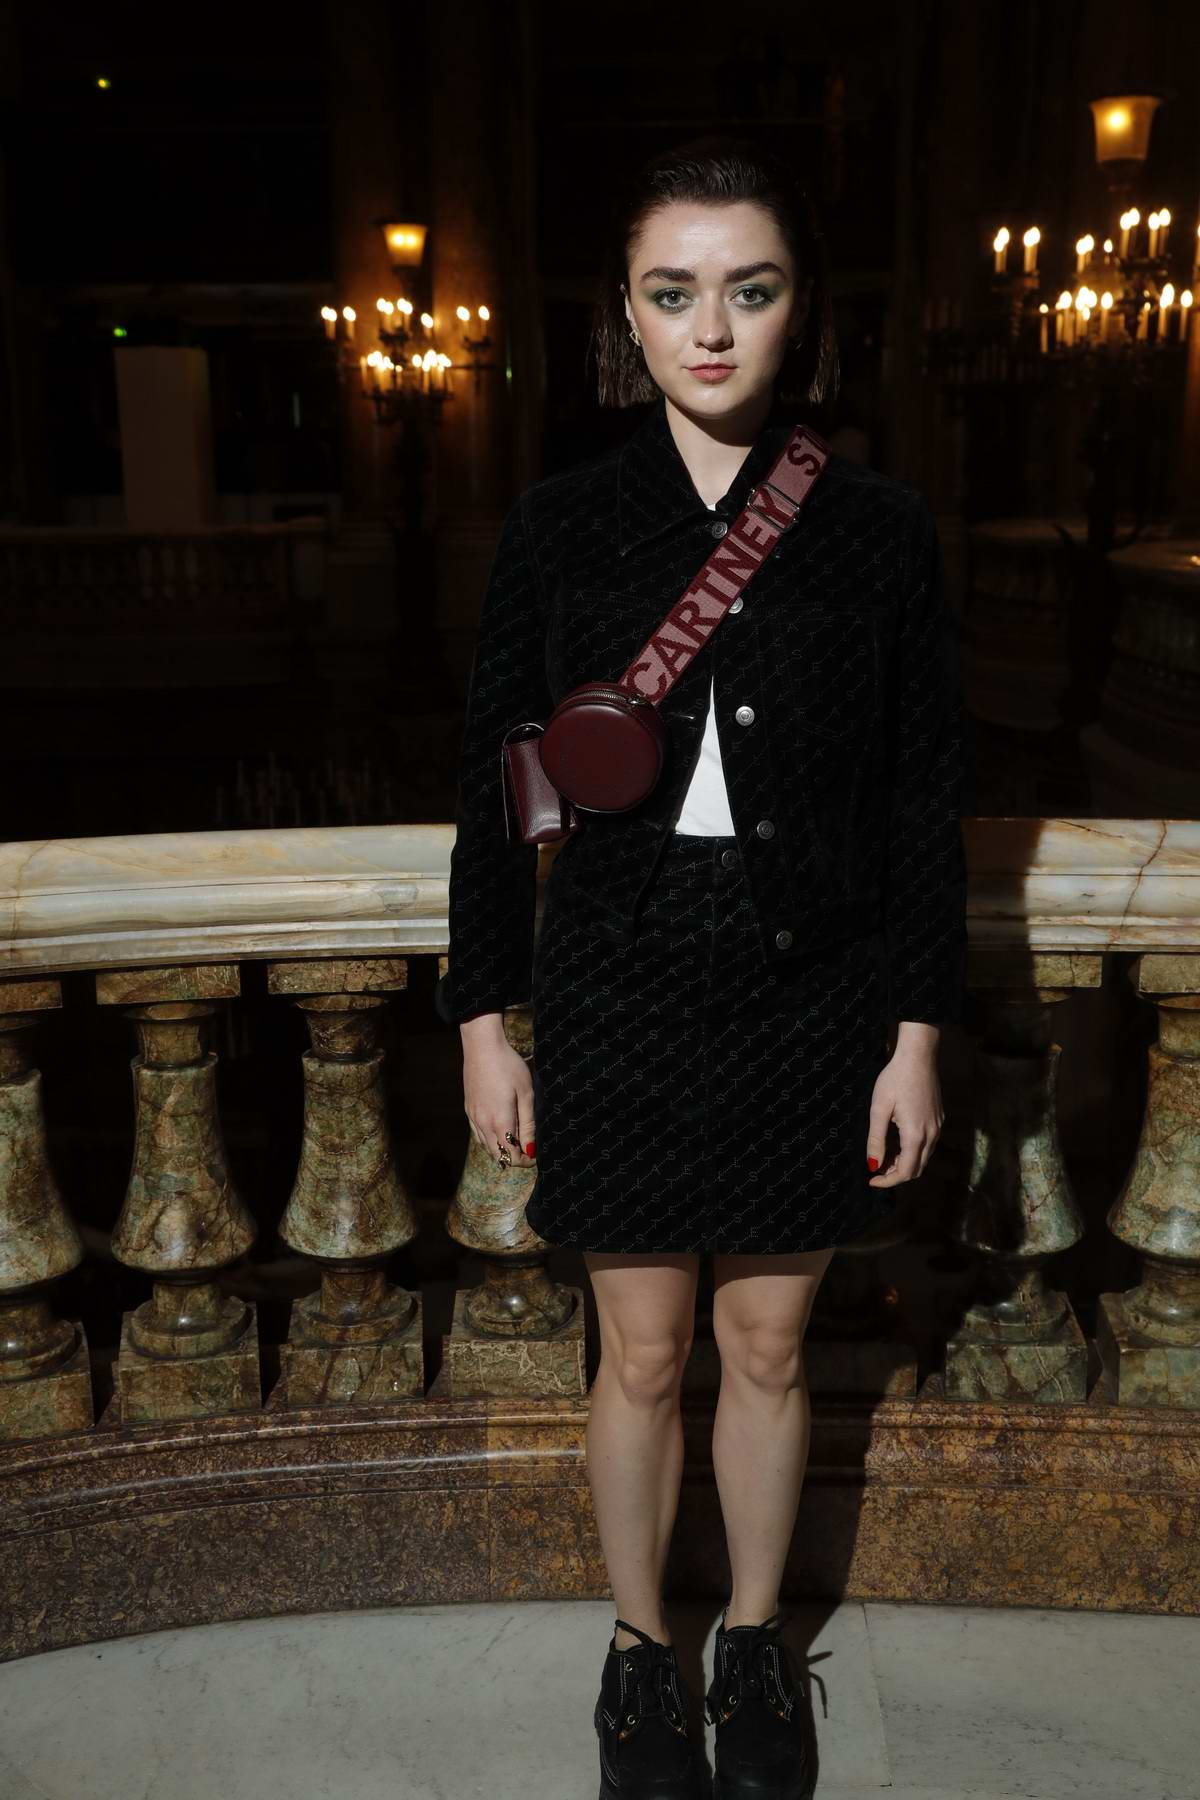 Maisie Williams attends the Givenchy Spring/Summer 2020 show during Paris Fashion Week in Paris, France